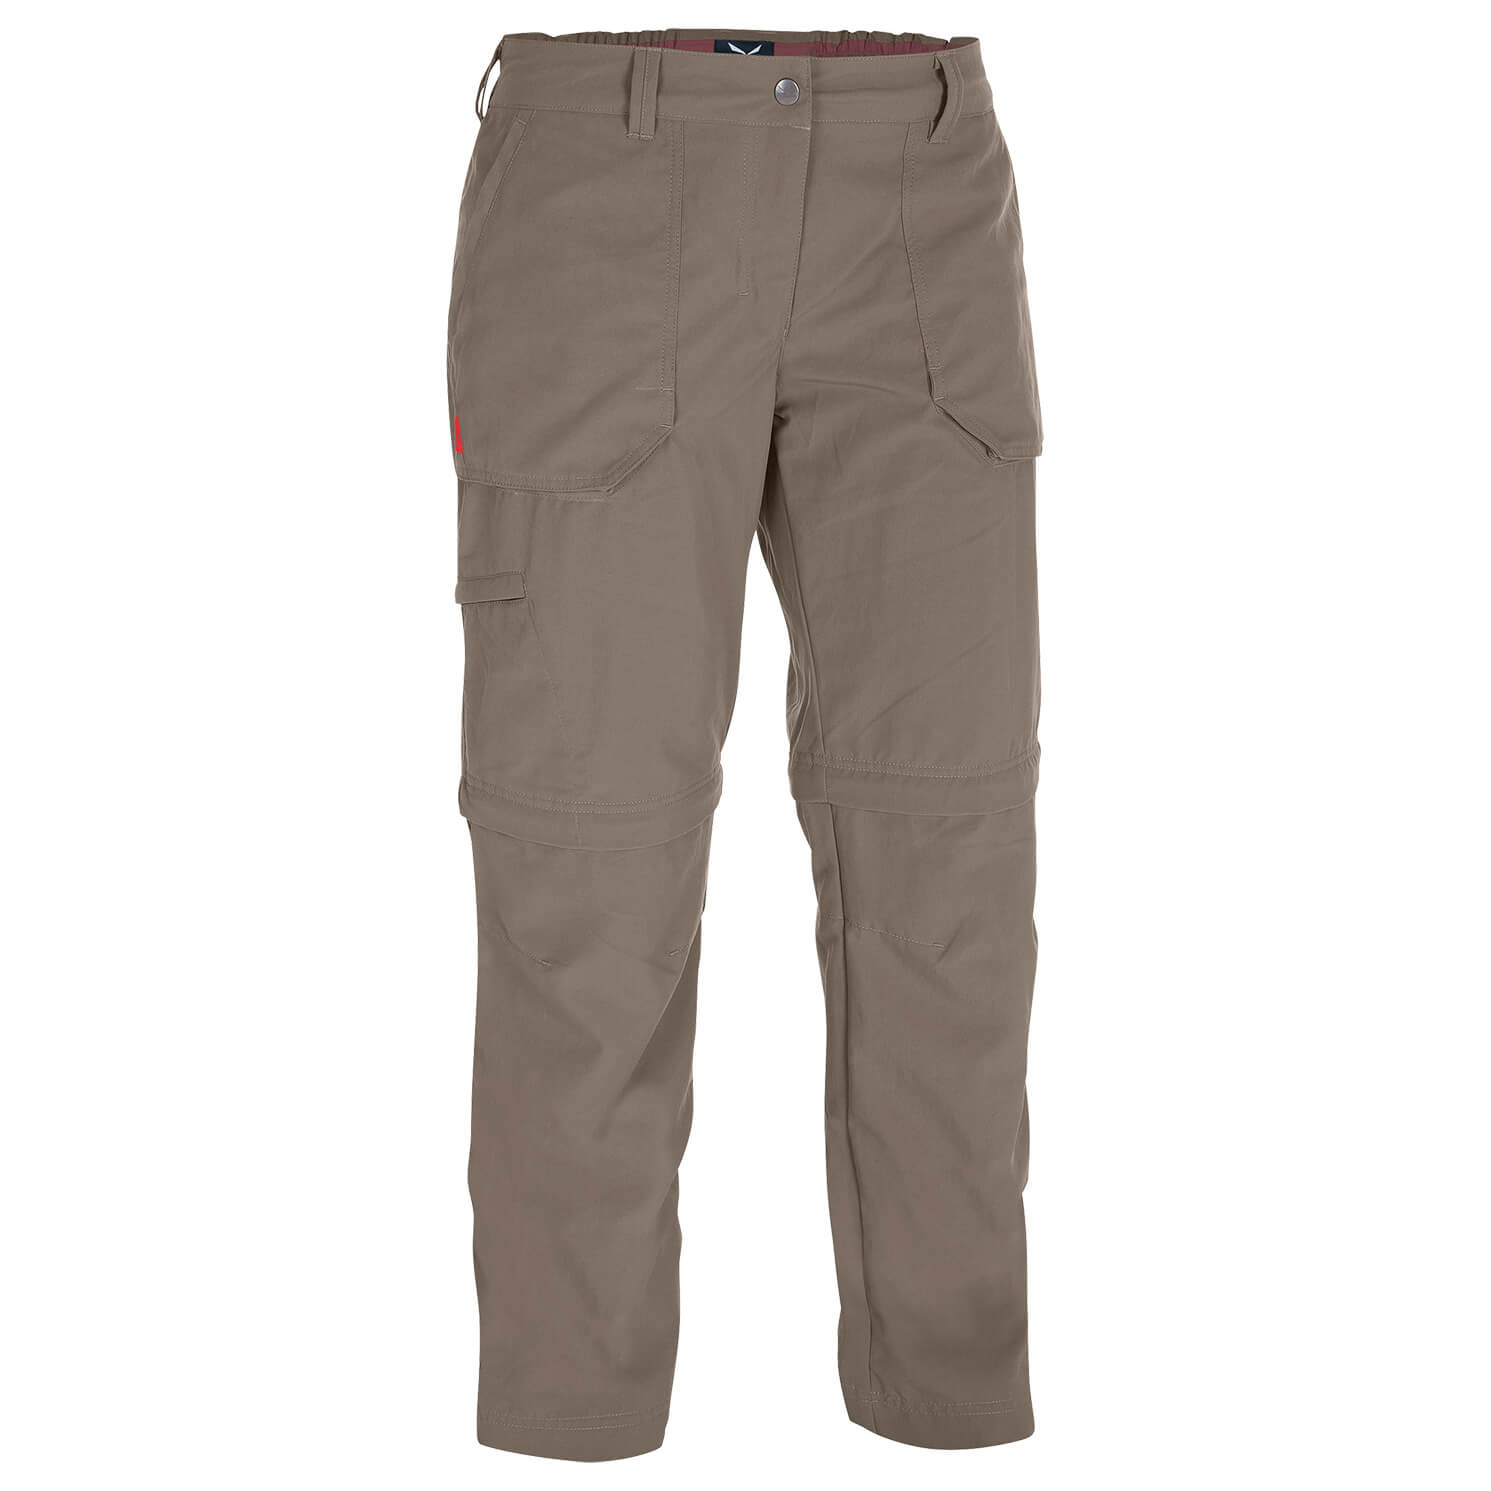 Lastest Women39s Vista Trekking Pants  Free Shipping At LLBean